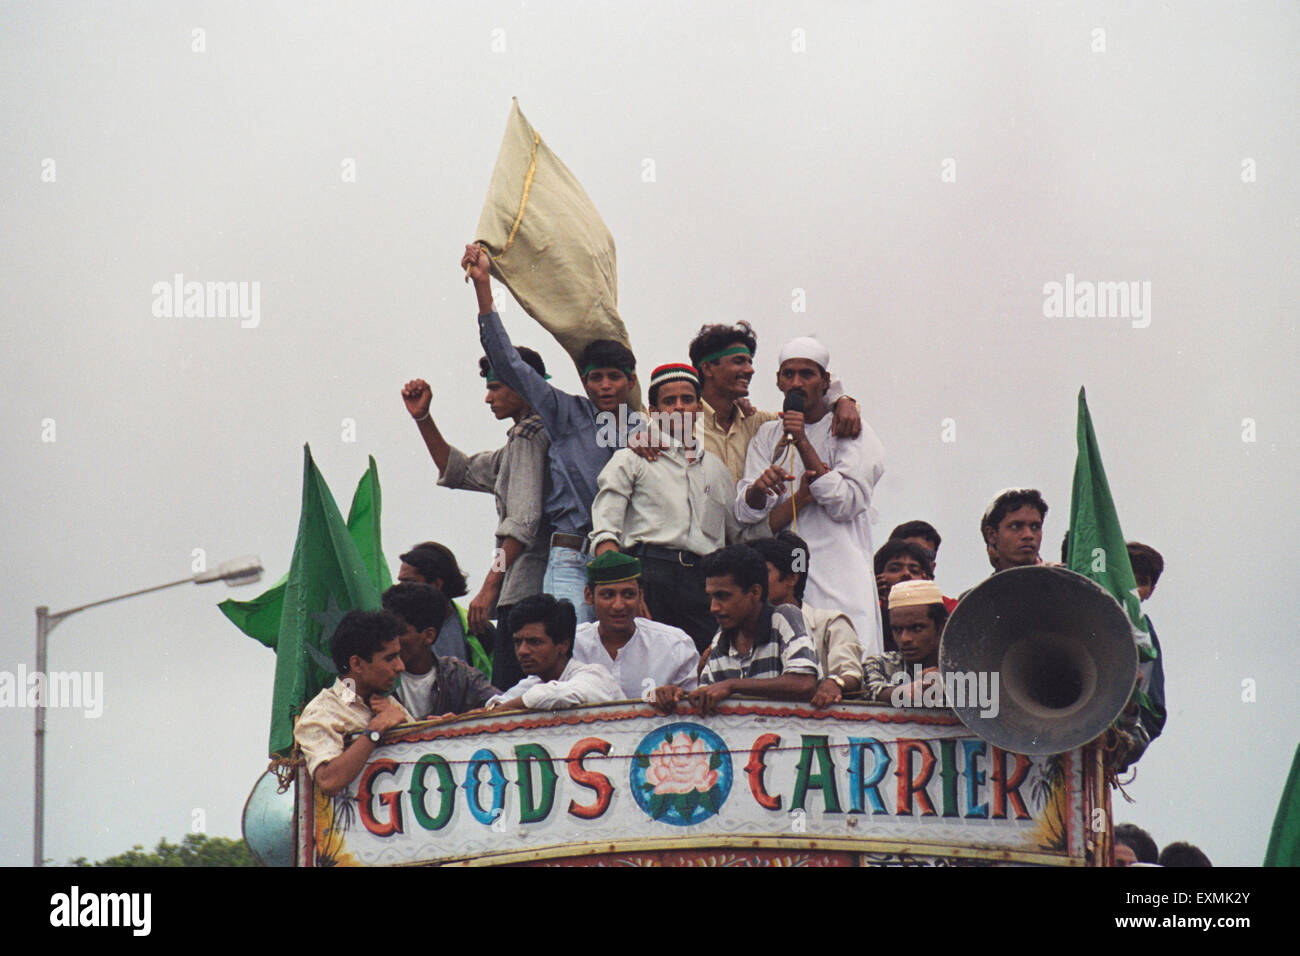 Demonstrators on top of truck mumbai india - Stock Image